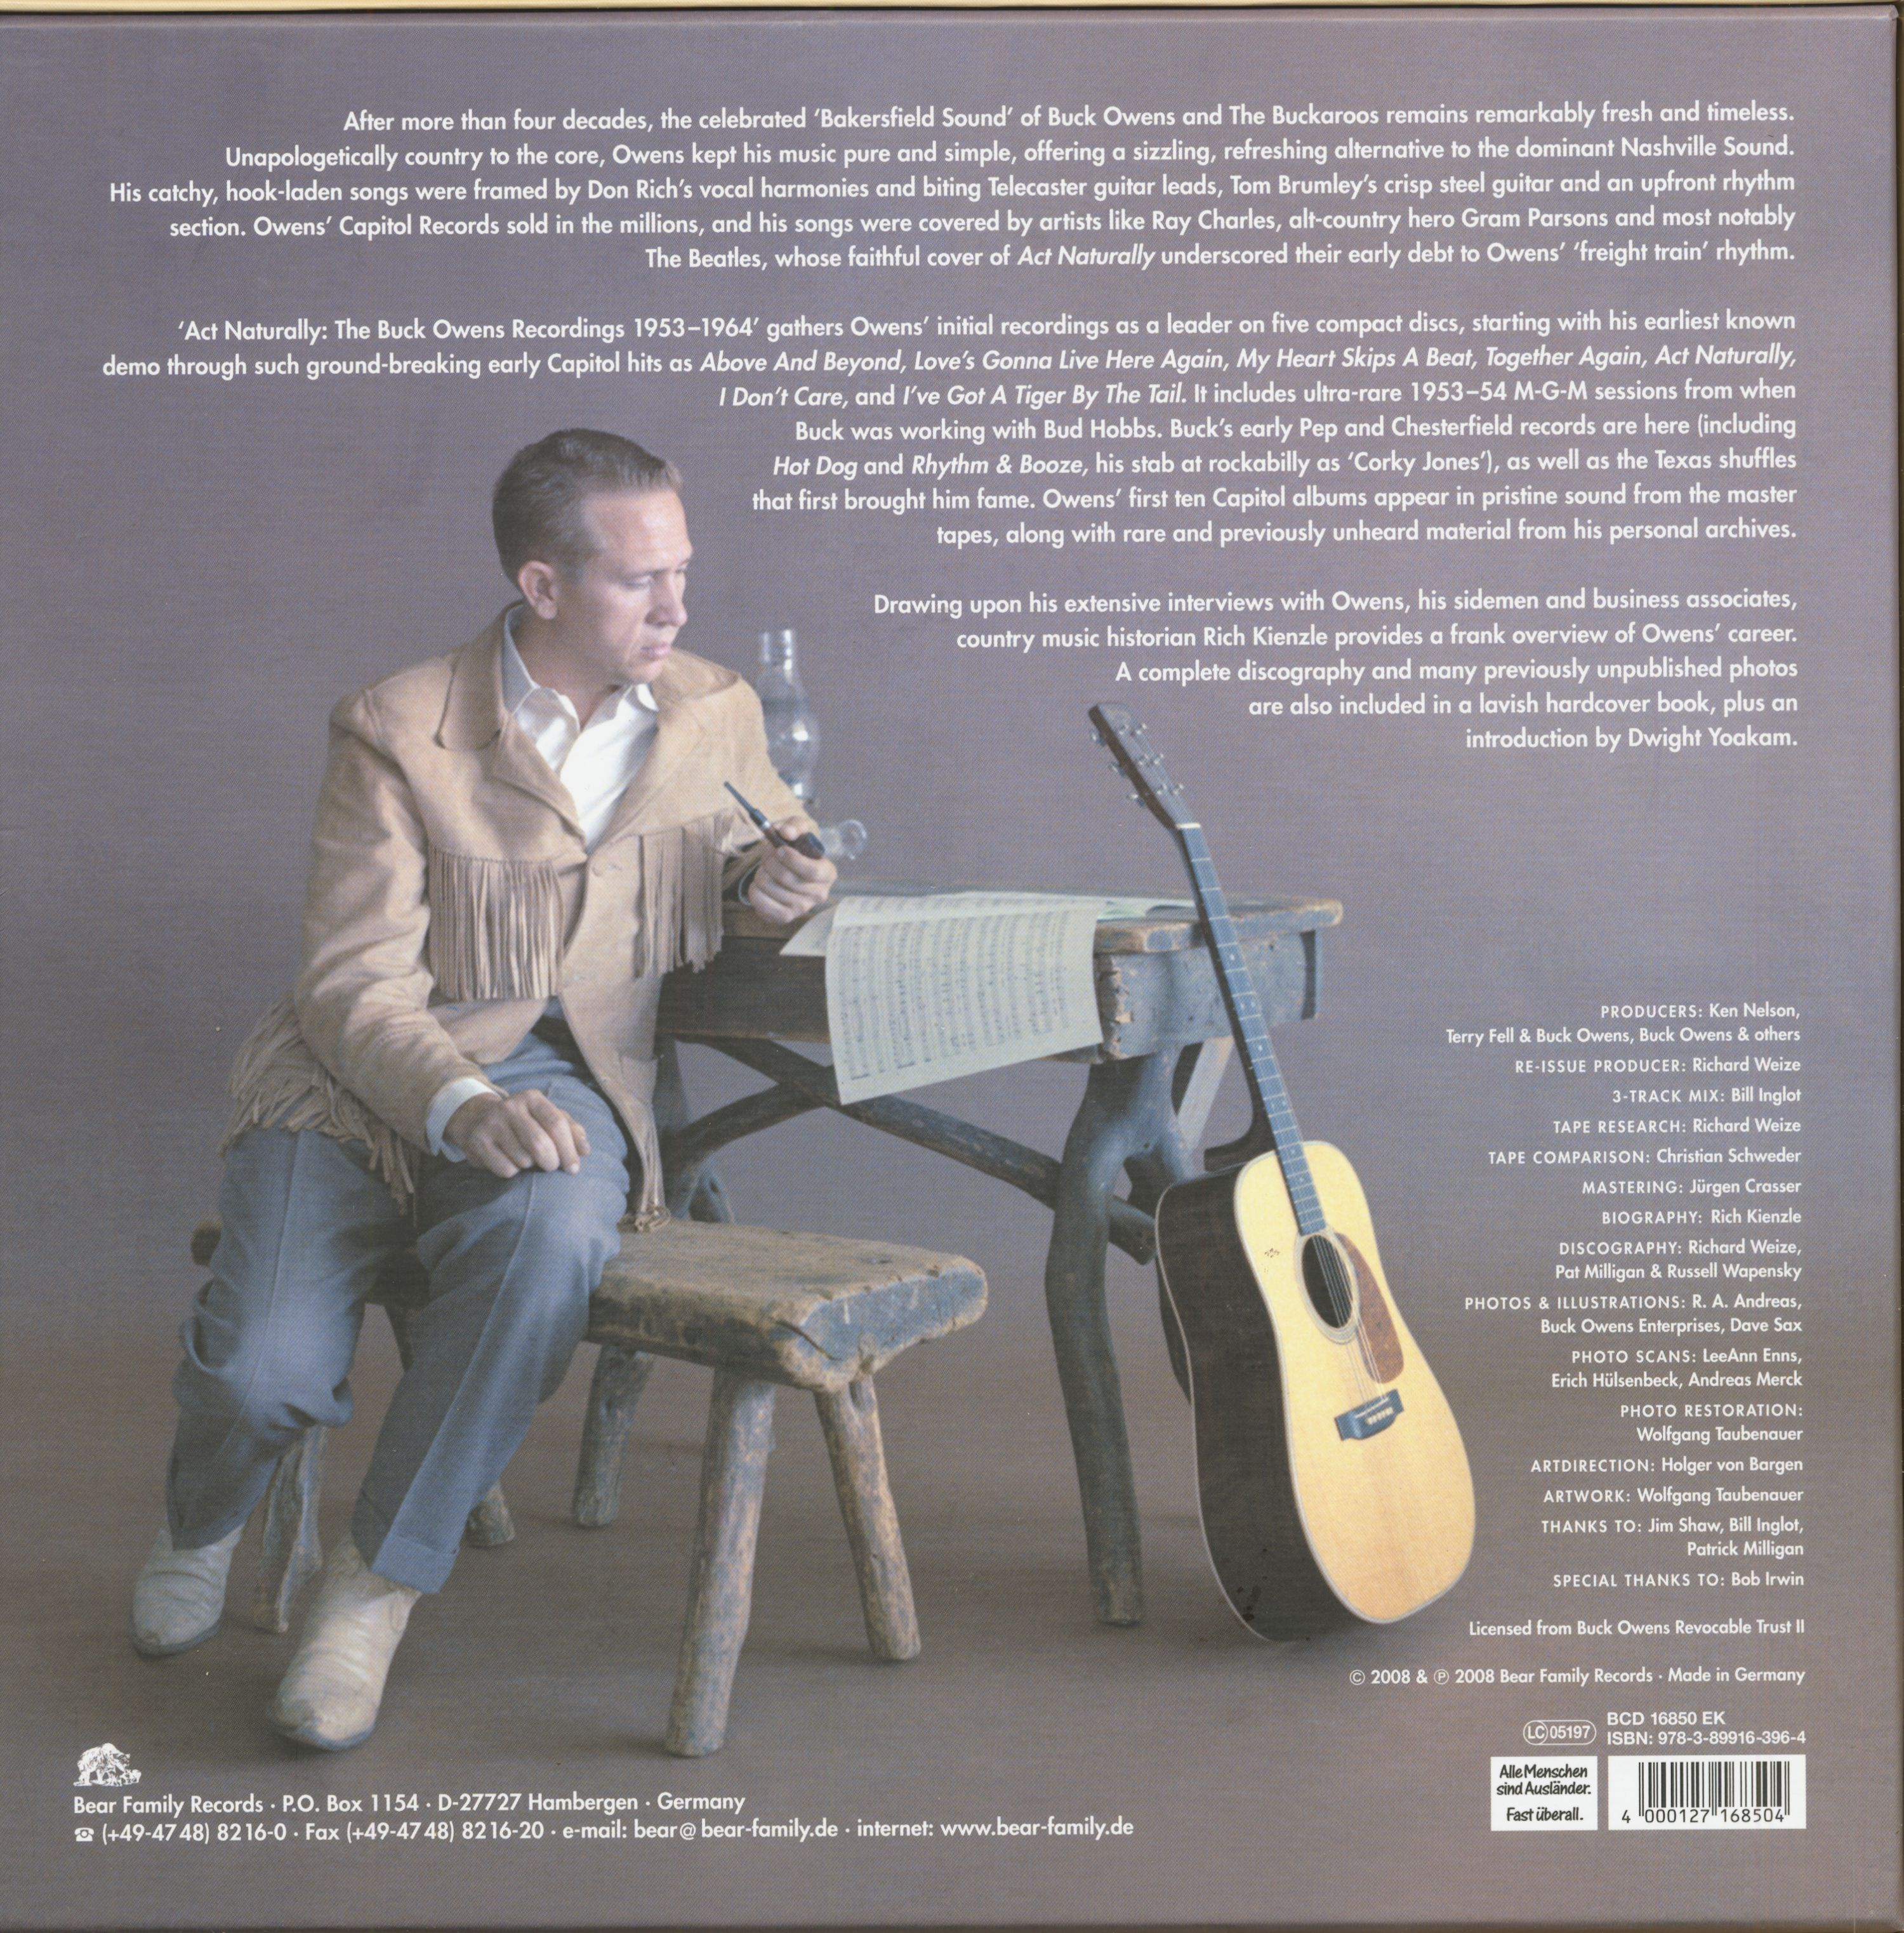 Buck Owens Box Set Act Naturally 5 CD